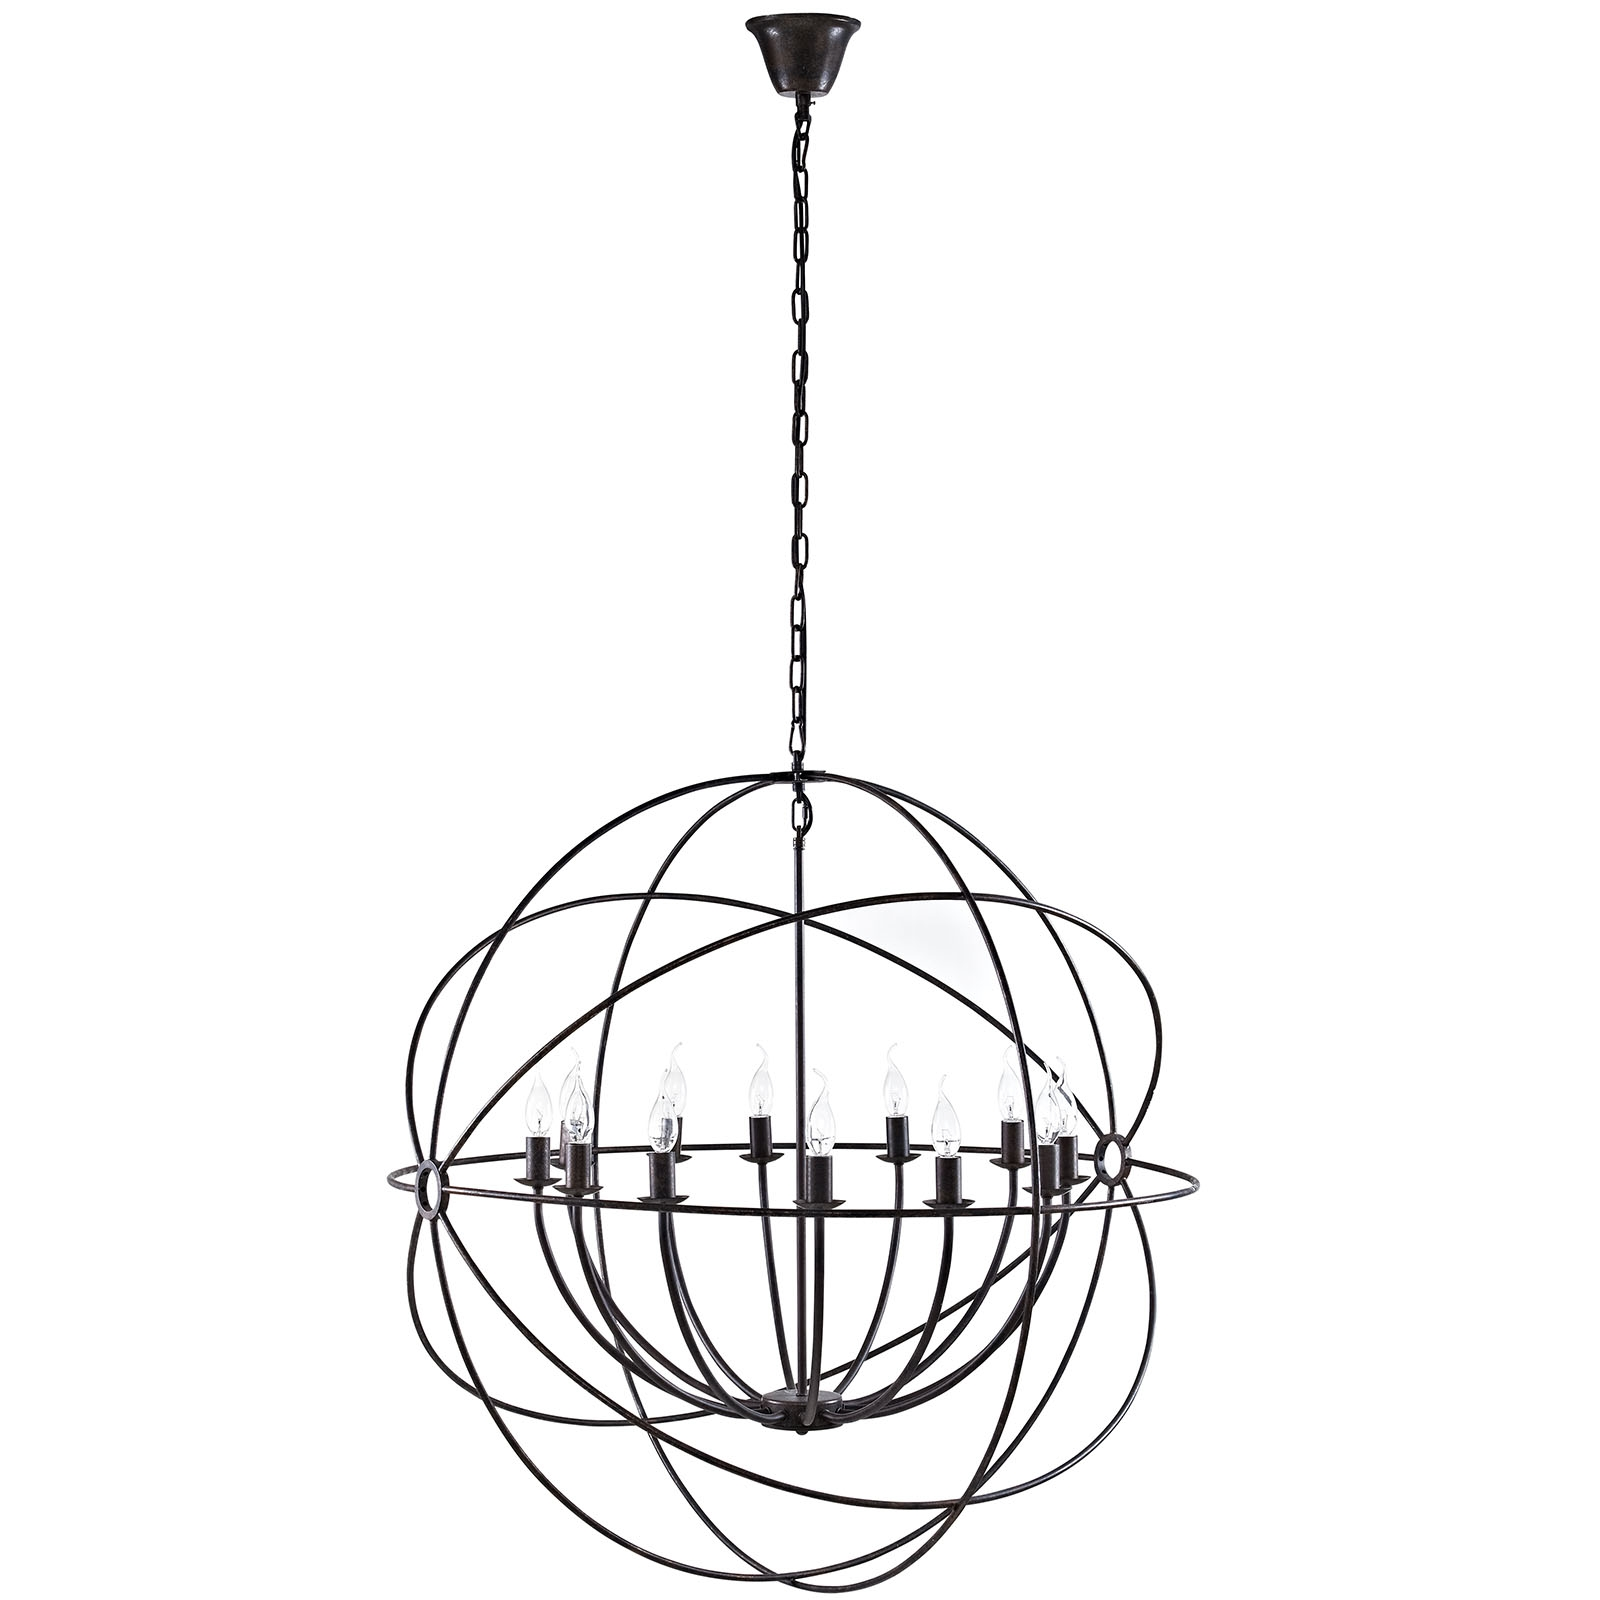 25 Best Collection Of Atom Chandeliers